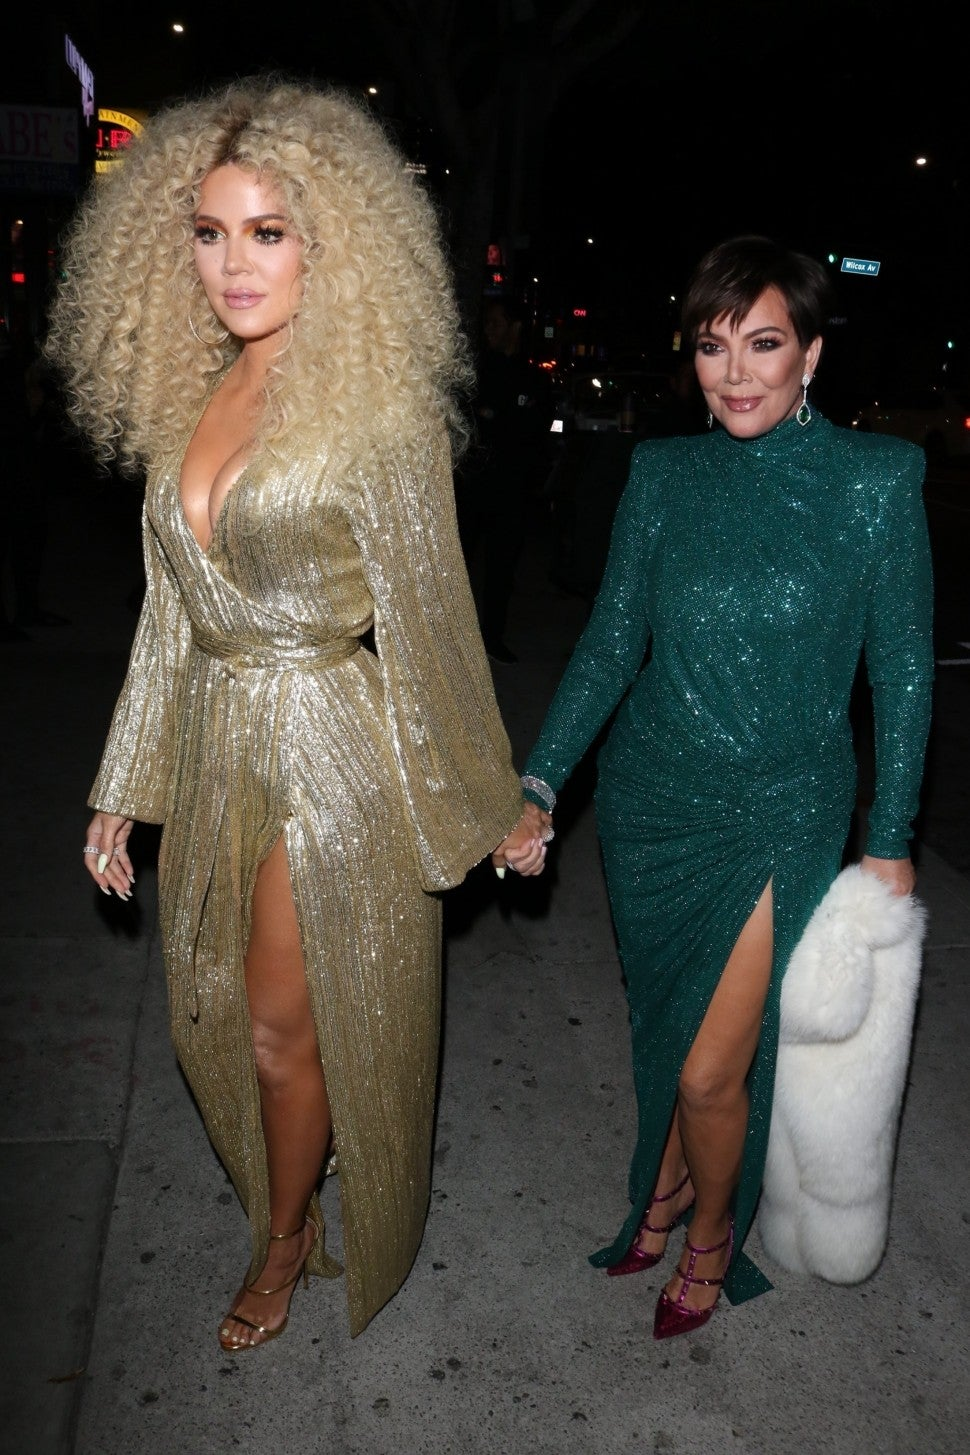 Khloe Kardashian and Kris Jenner arrive at diana ross' 75th birthday